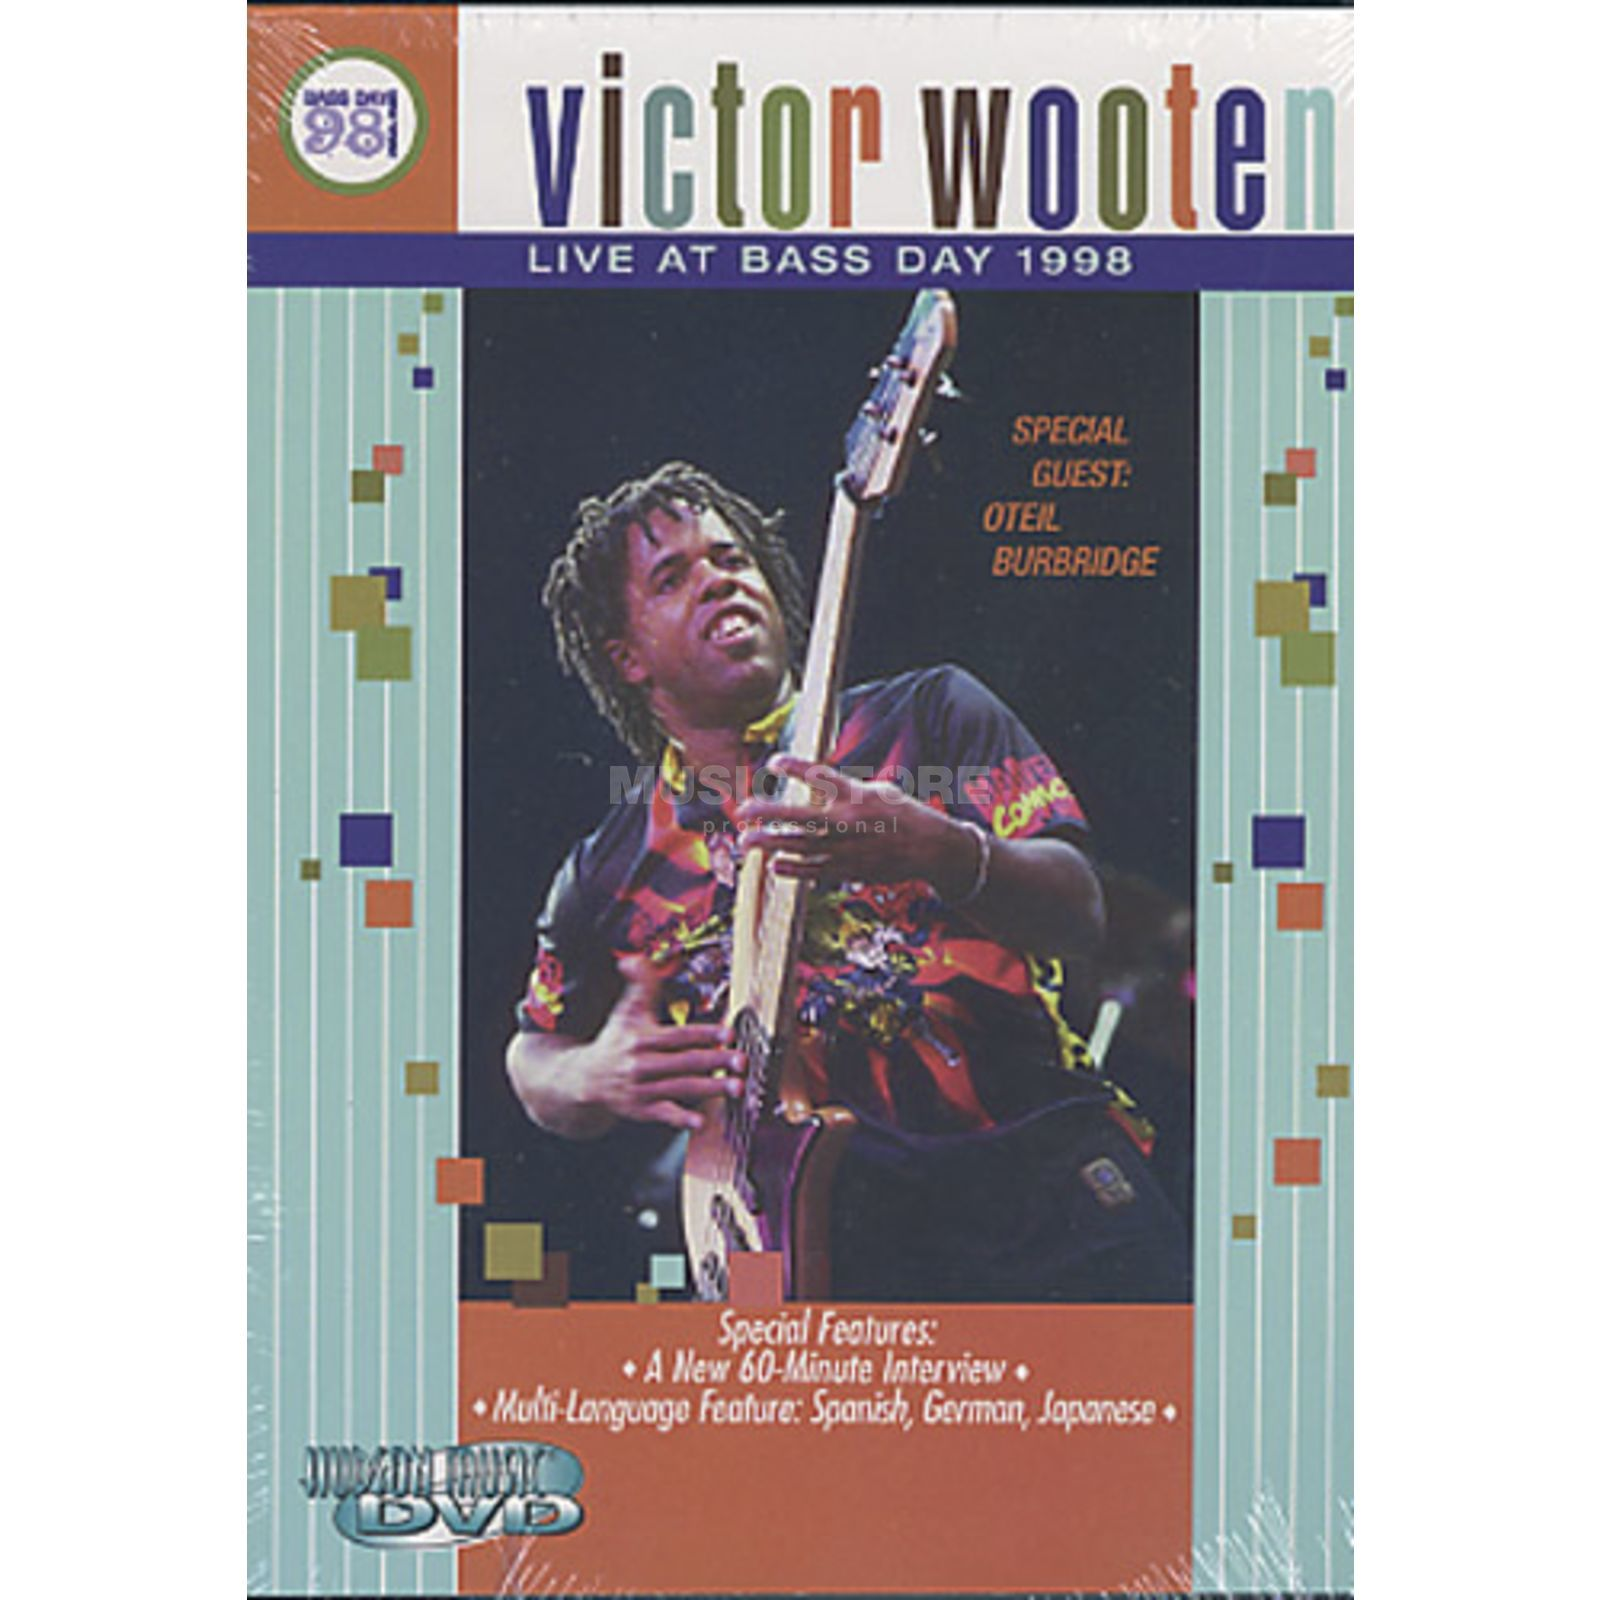 Hudson Music Wooten, V. - Live at bass day  1998 - DVD Edition   Produktbillede